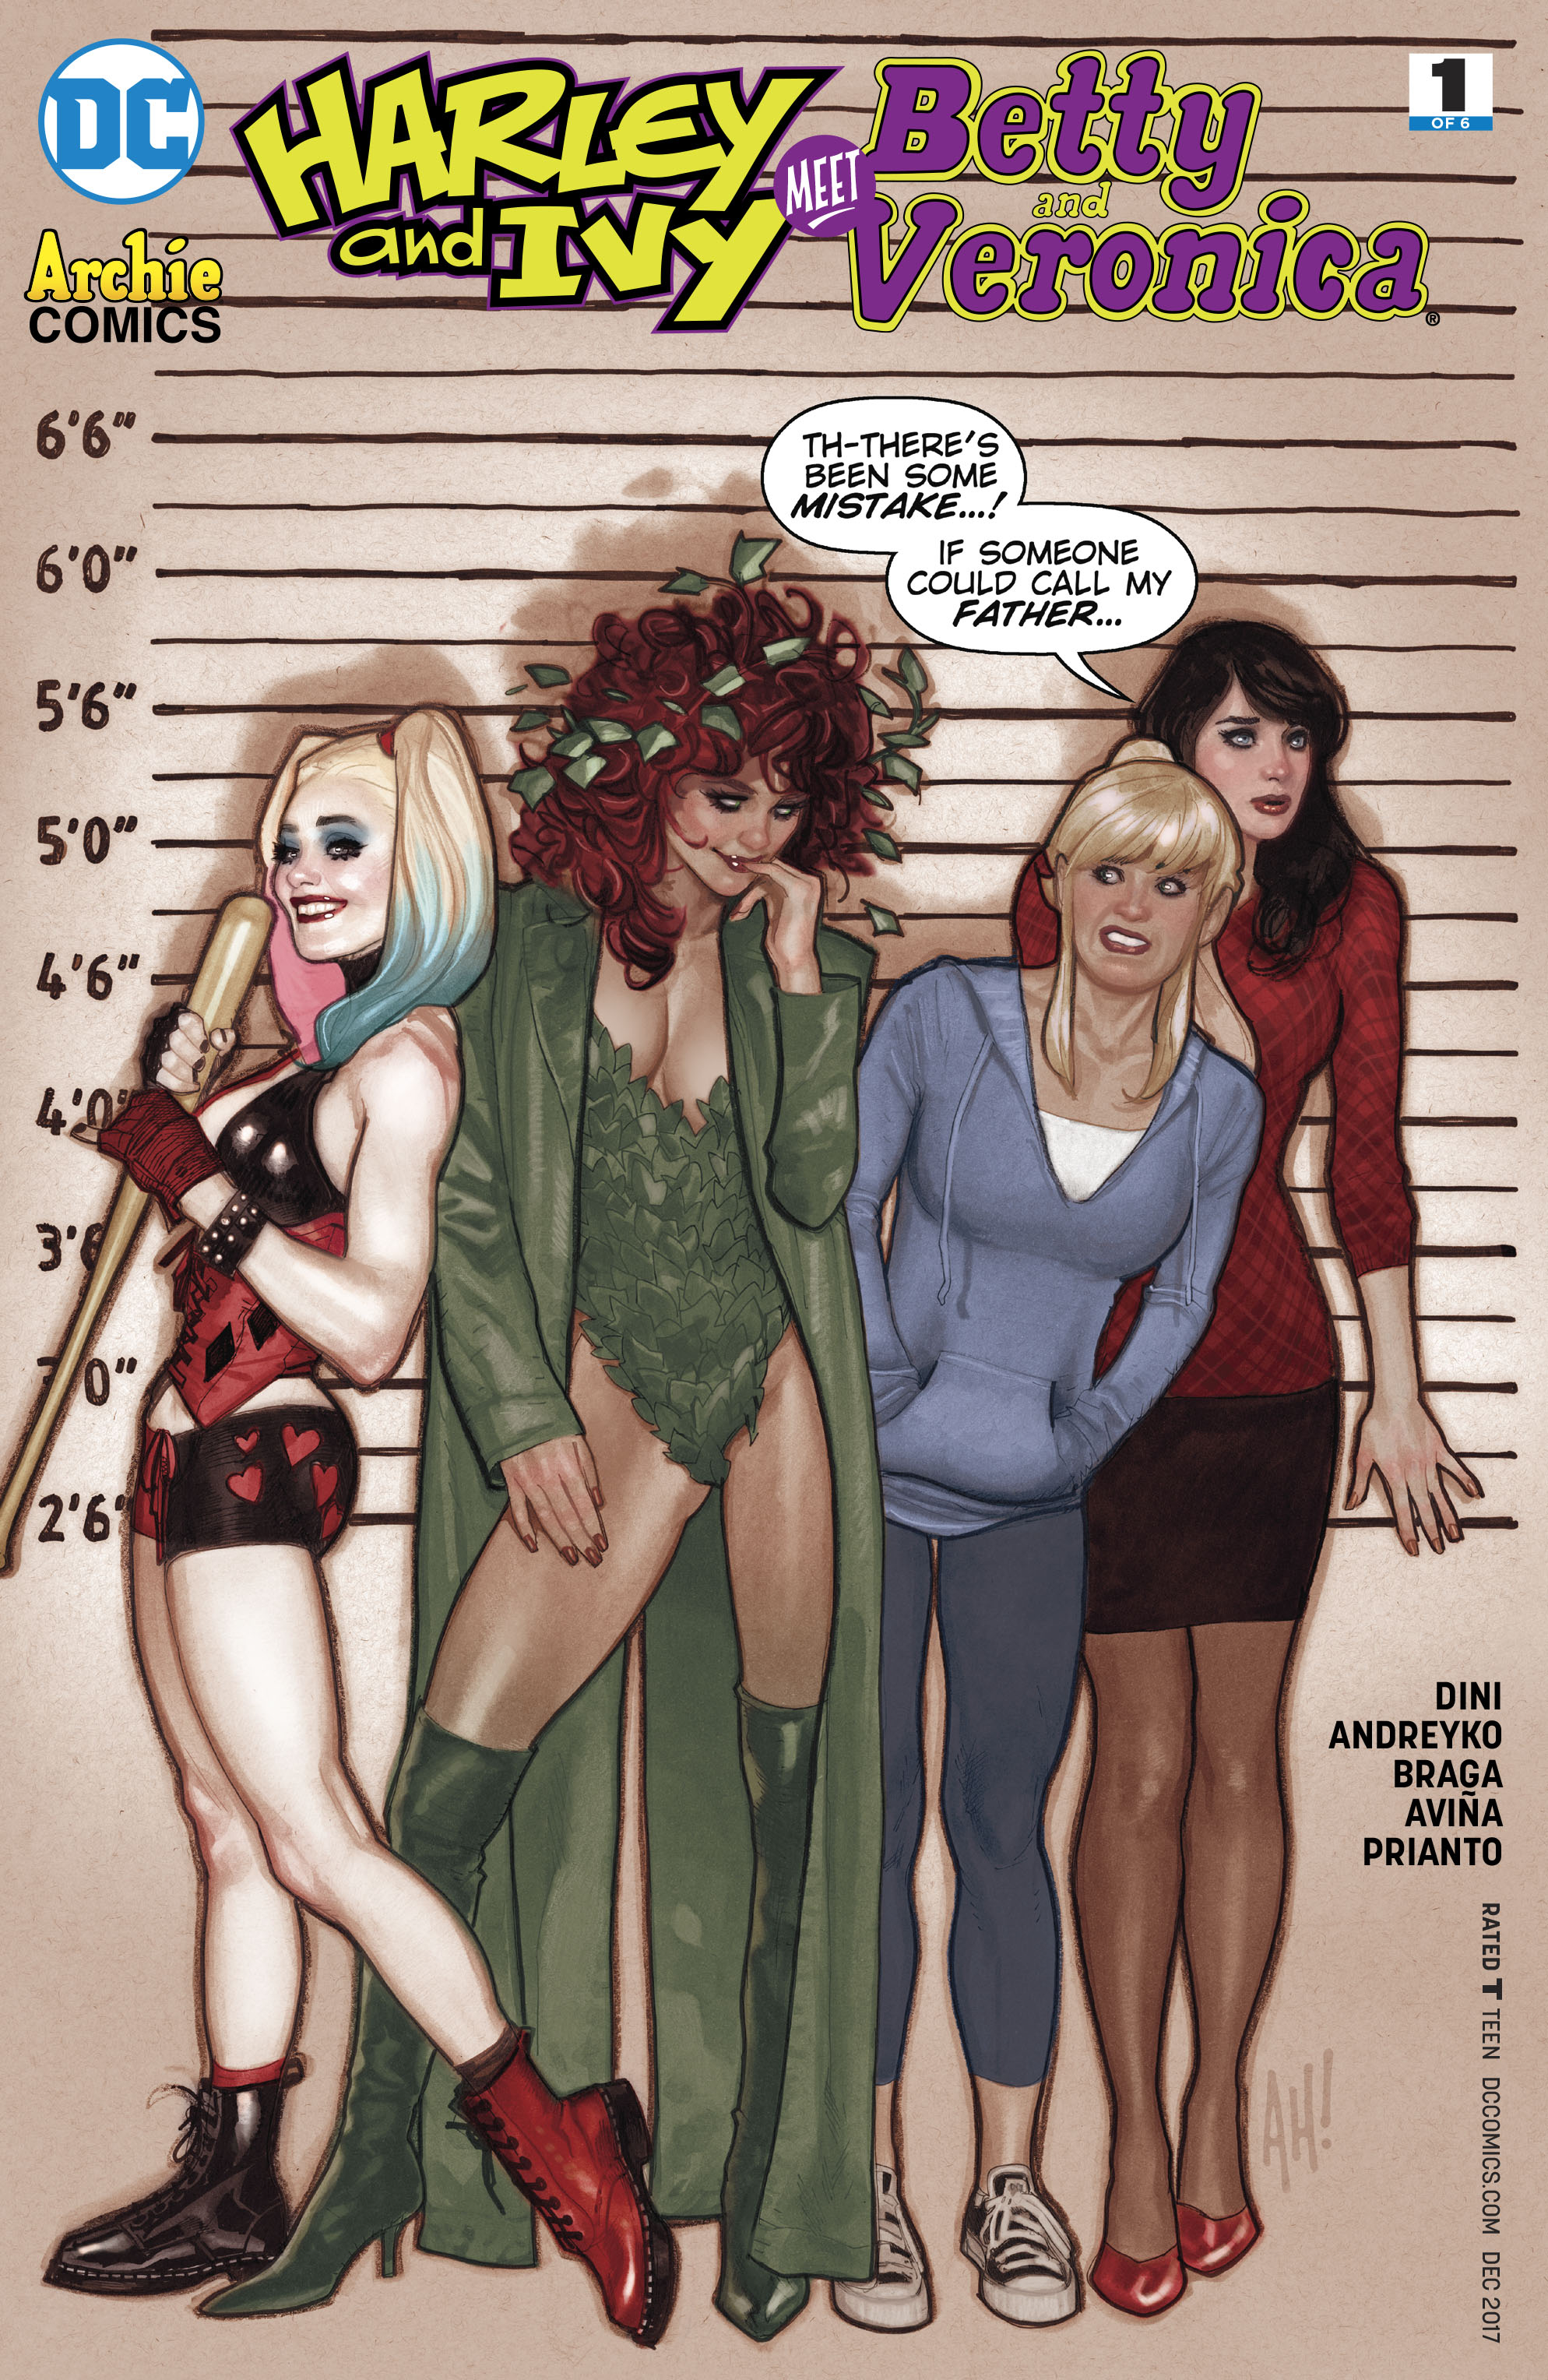 HARLEY & IVY MEET BETTY & VERONICA #1